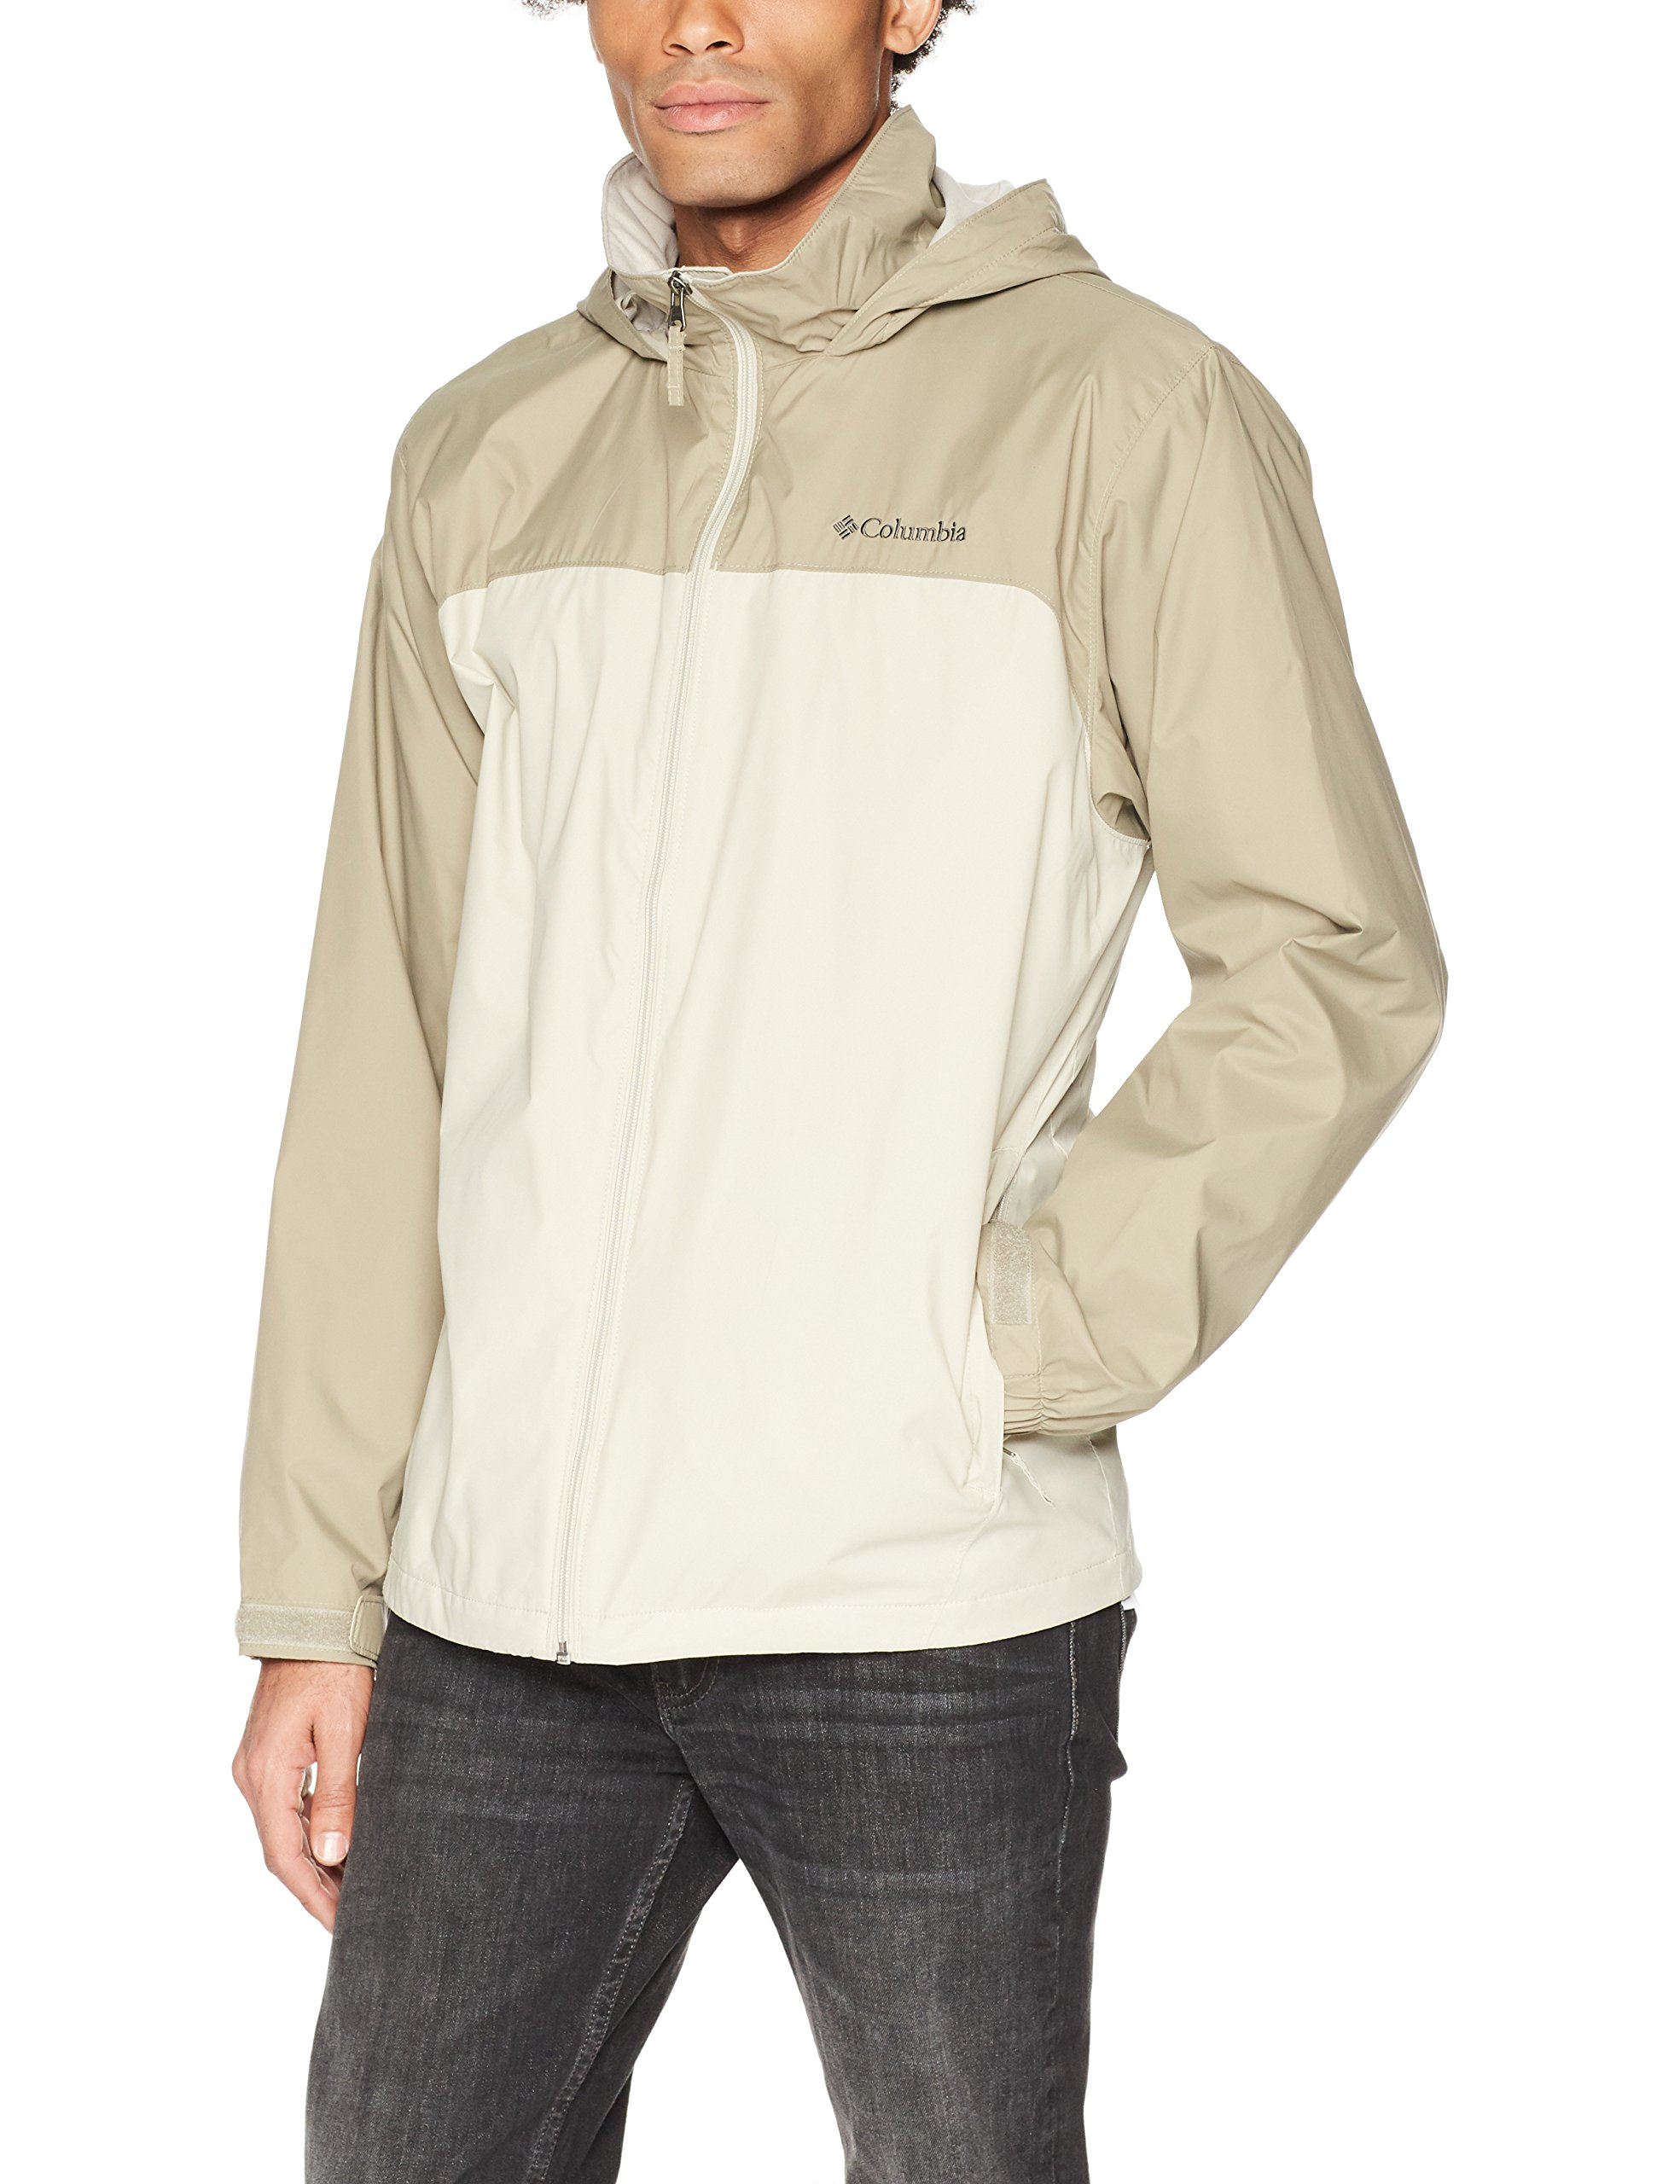 Columbia Men's Glennaker Lake Lined Rain Jacket, Fossil, Tusk, M by Columbia